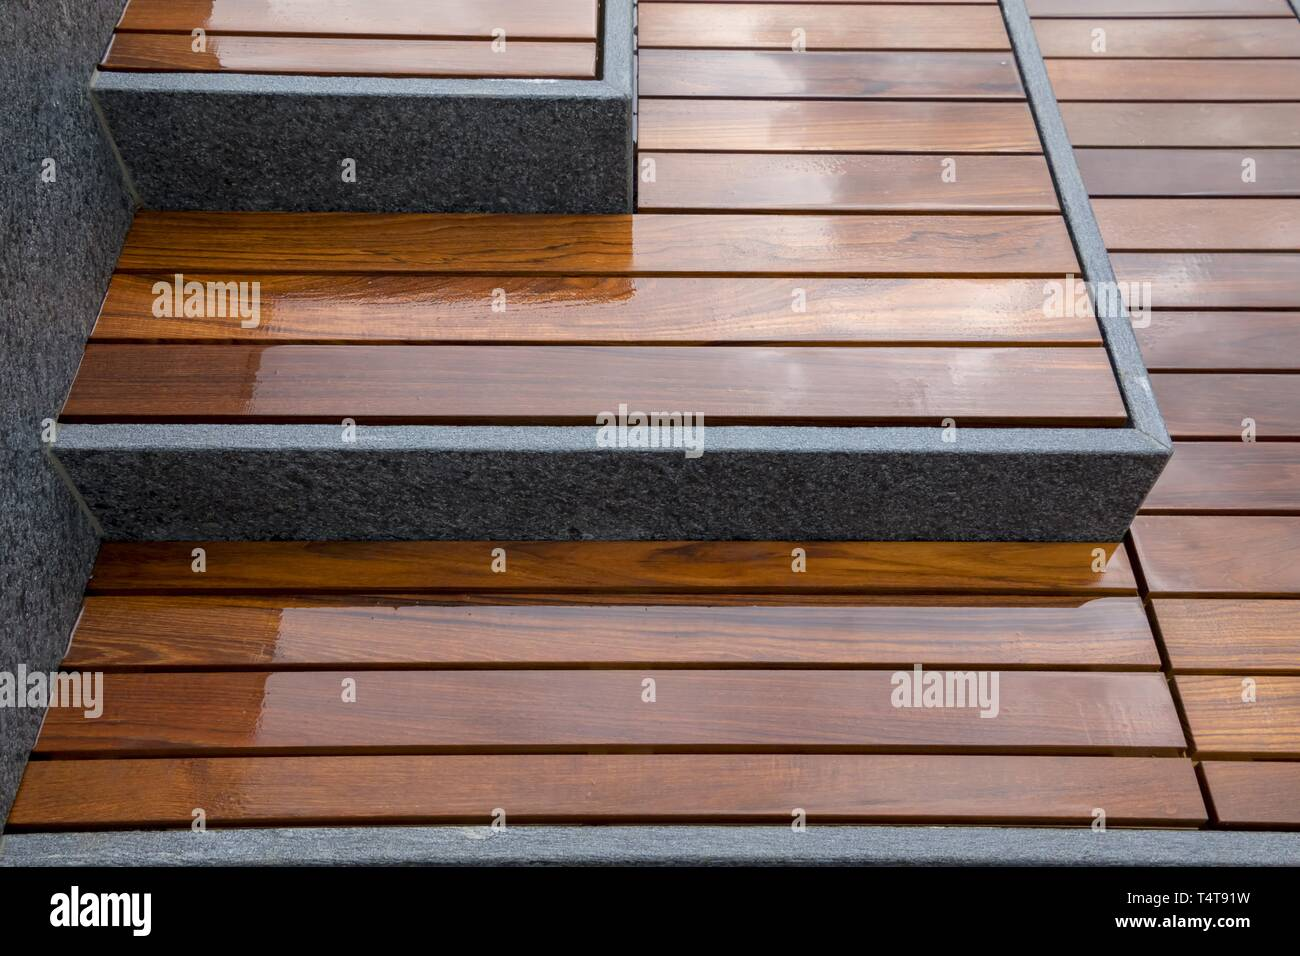 Wood Staircase With Granite Stone Stock Photo Alamy